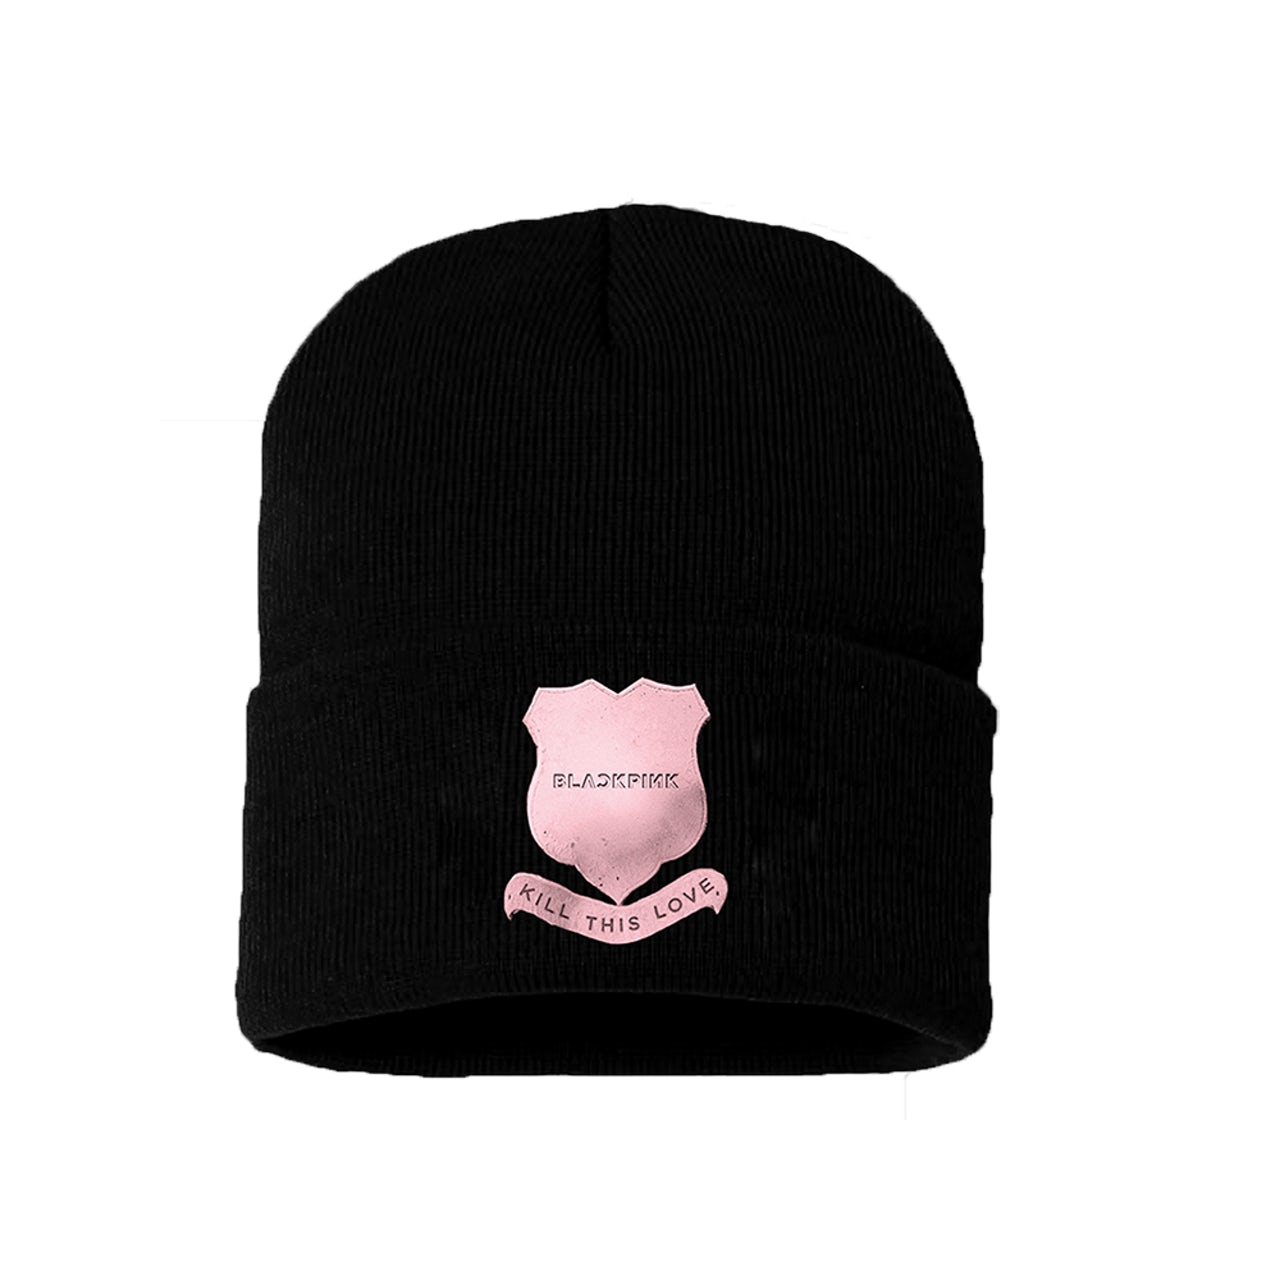 BLACKPINK KILL THIS LOVE BEANIE + DIGITAL ALBUM